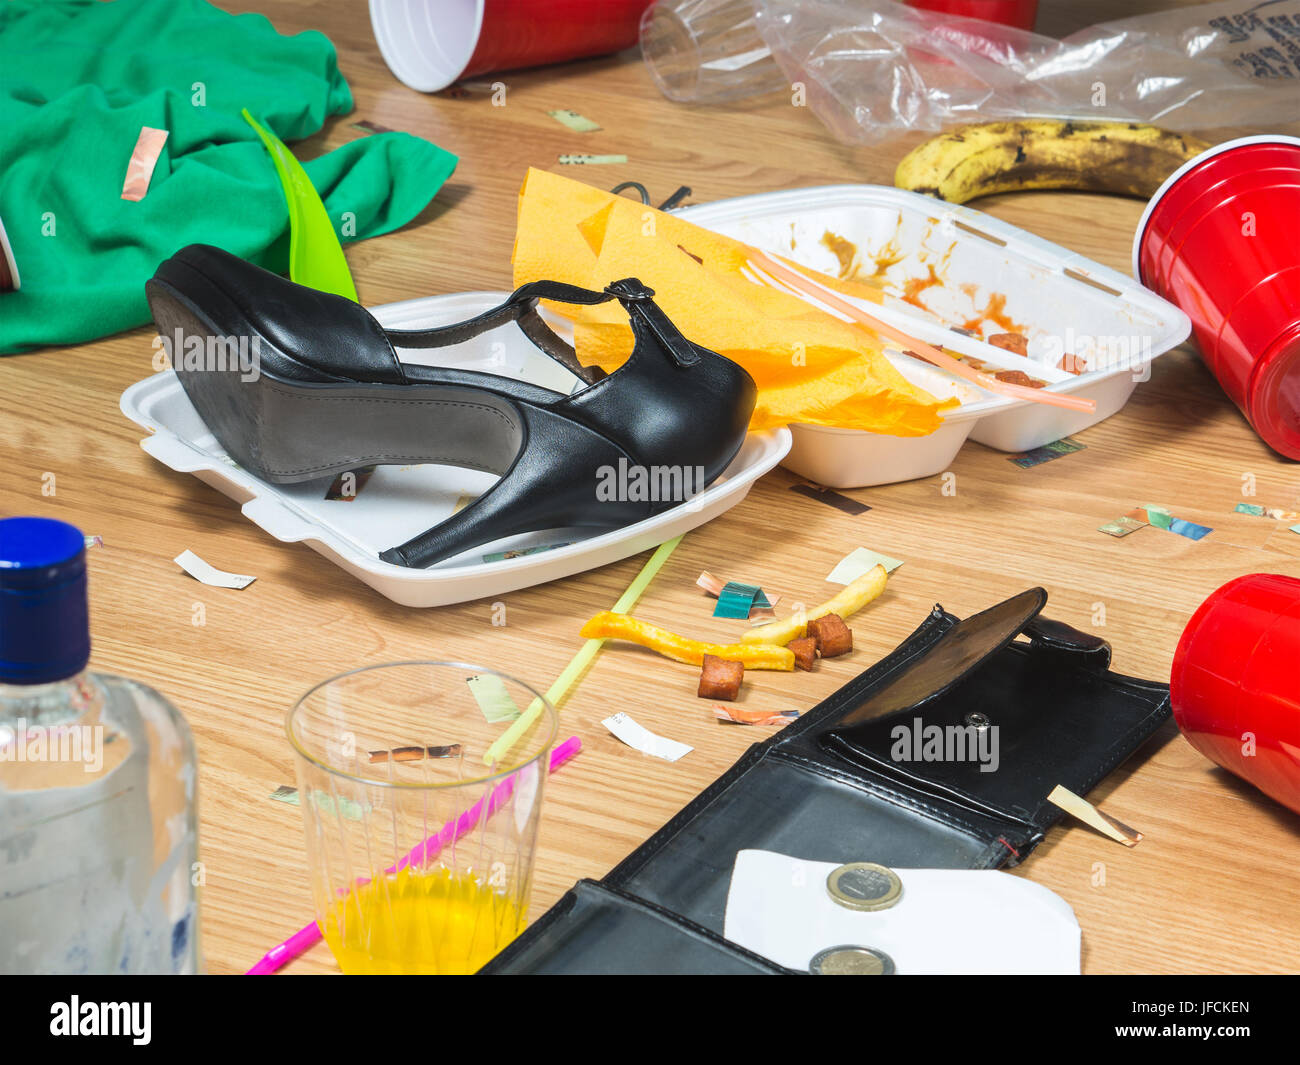 High heels, food leftovers and trash everywhere after awesome party. Next morning regret and remorse. Messy home - Stock Image